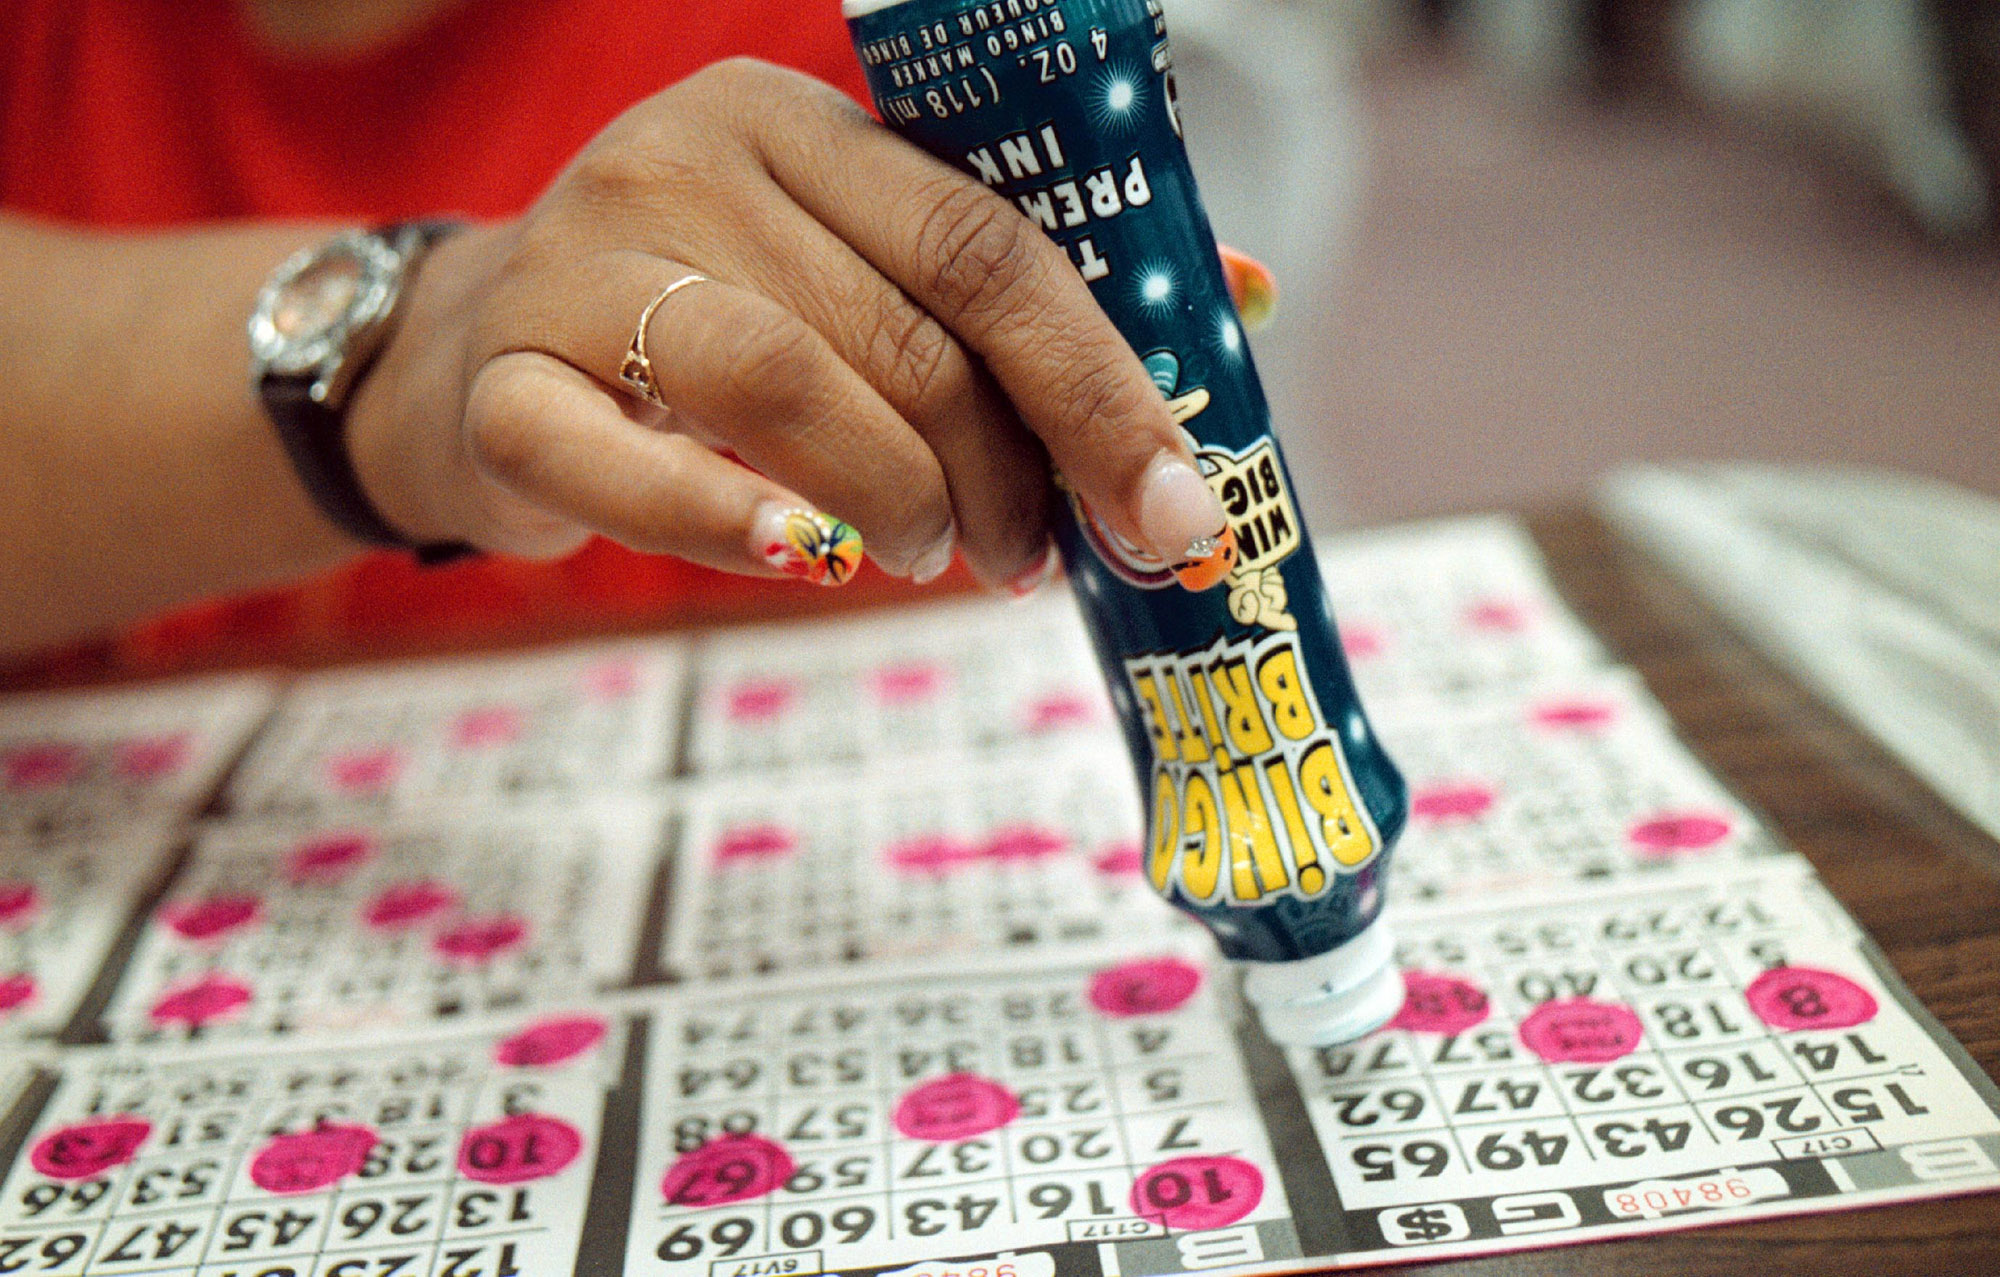 COVID-19 in Canada: Quebec bingo hall holds large, 'annoying' event despite warnings; Ontario's York region 'teetering' on edge of more restrictions